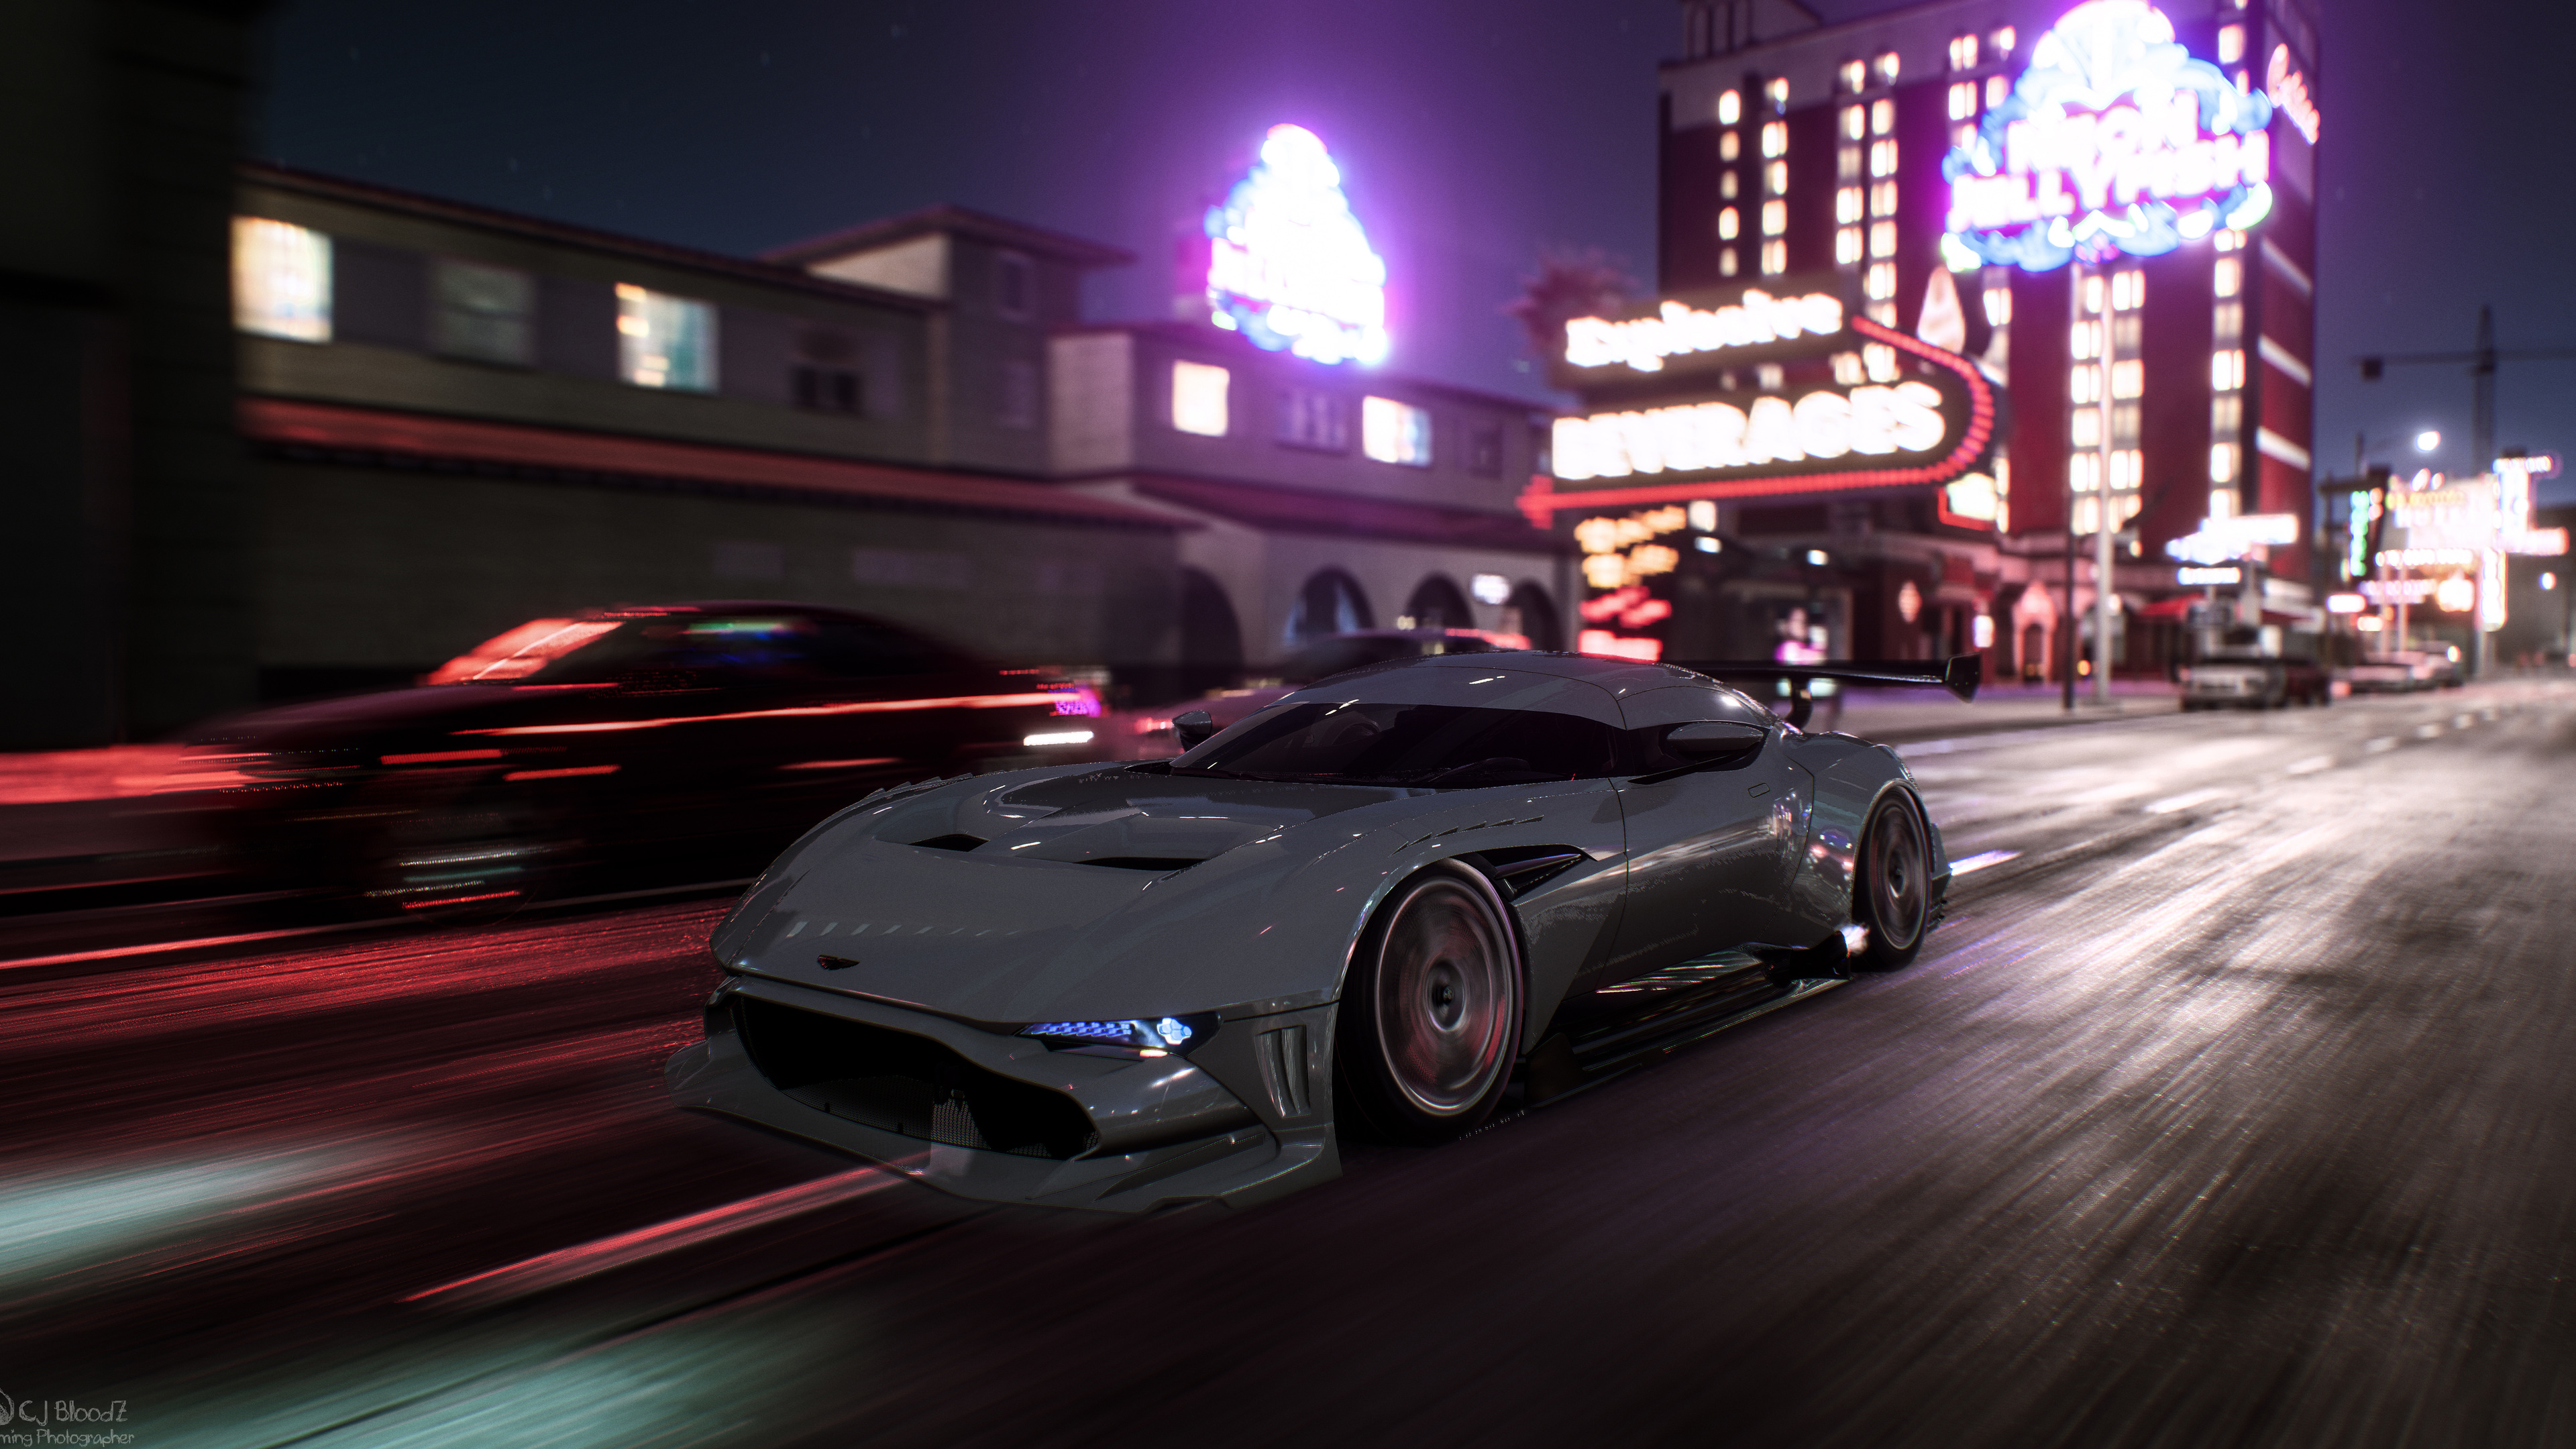 Wallpaper 4k Need For Speed Payback 8k 2018 Games Wallpapers 4k